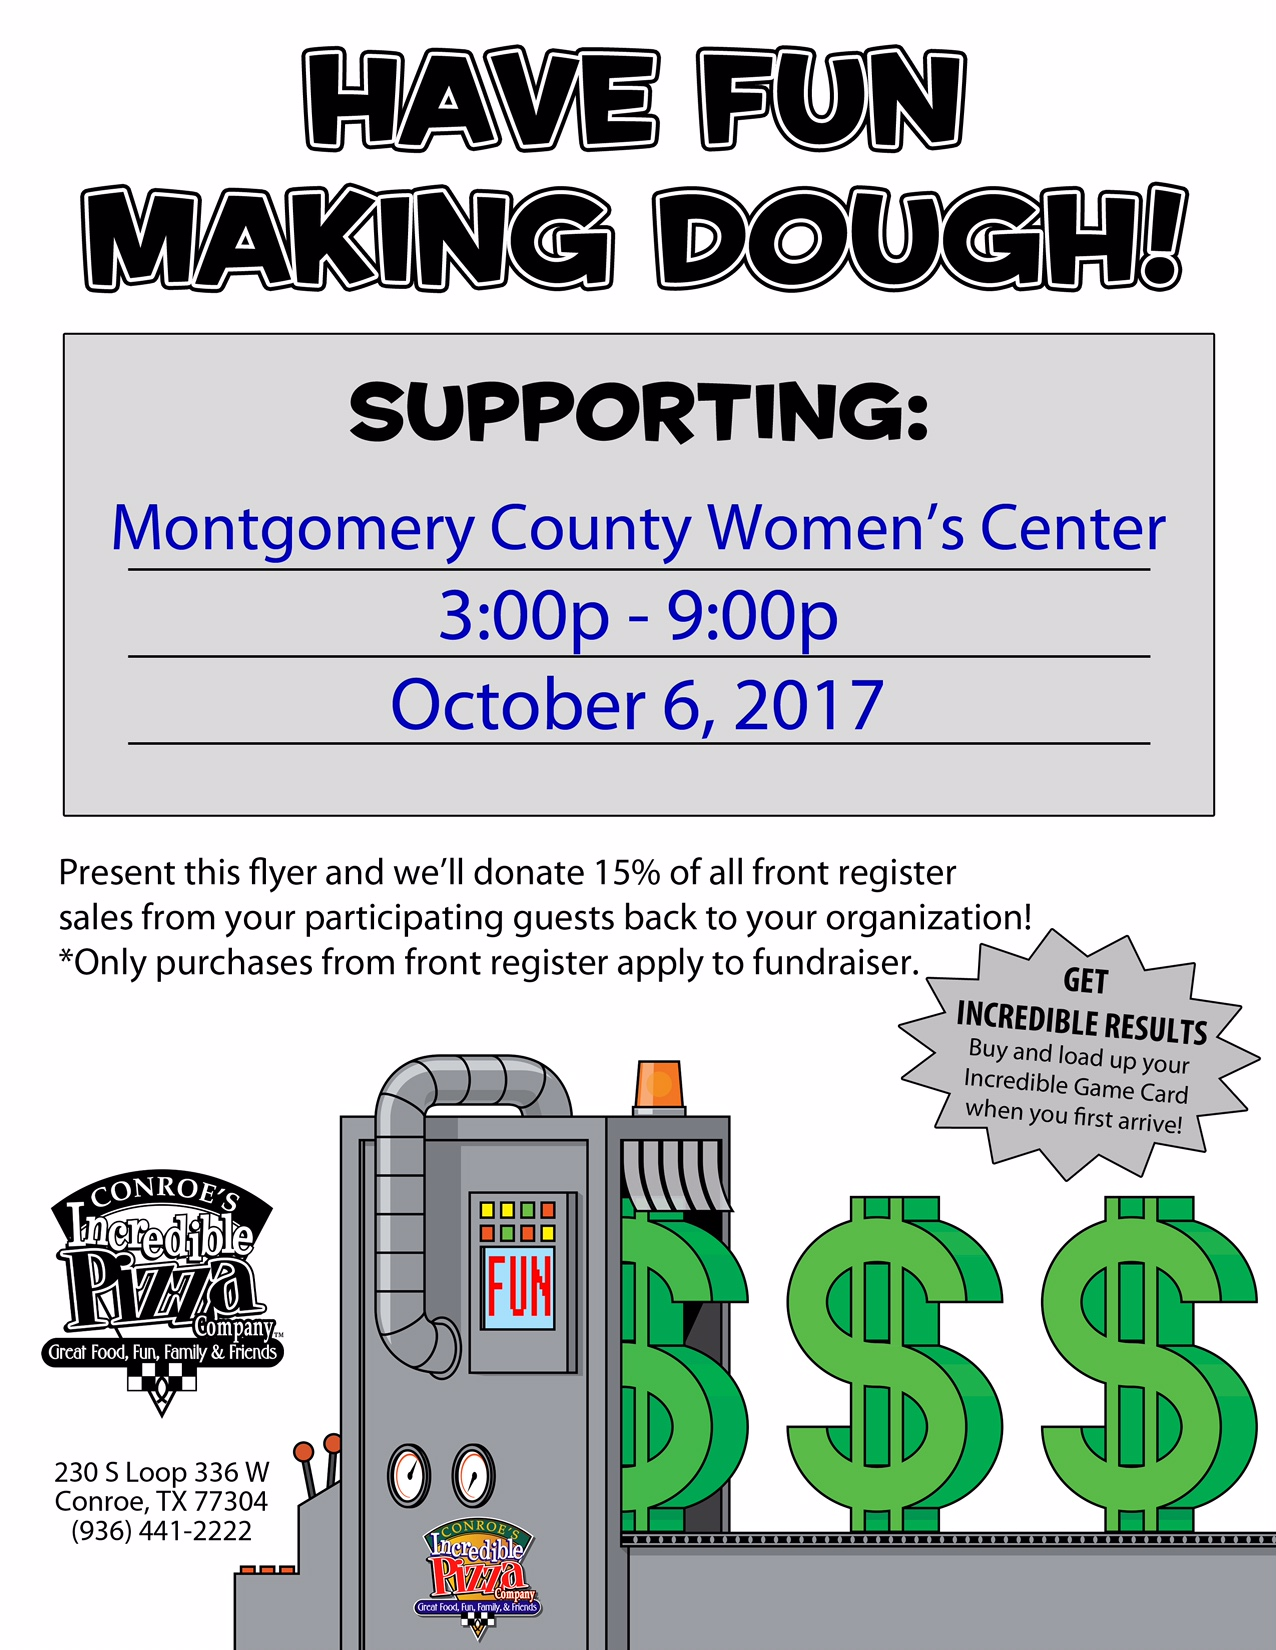 Flyer for Incredible Pizza Company fundraising event